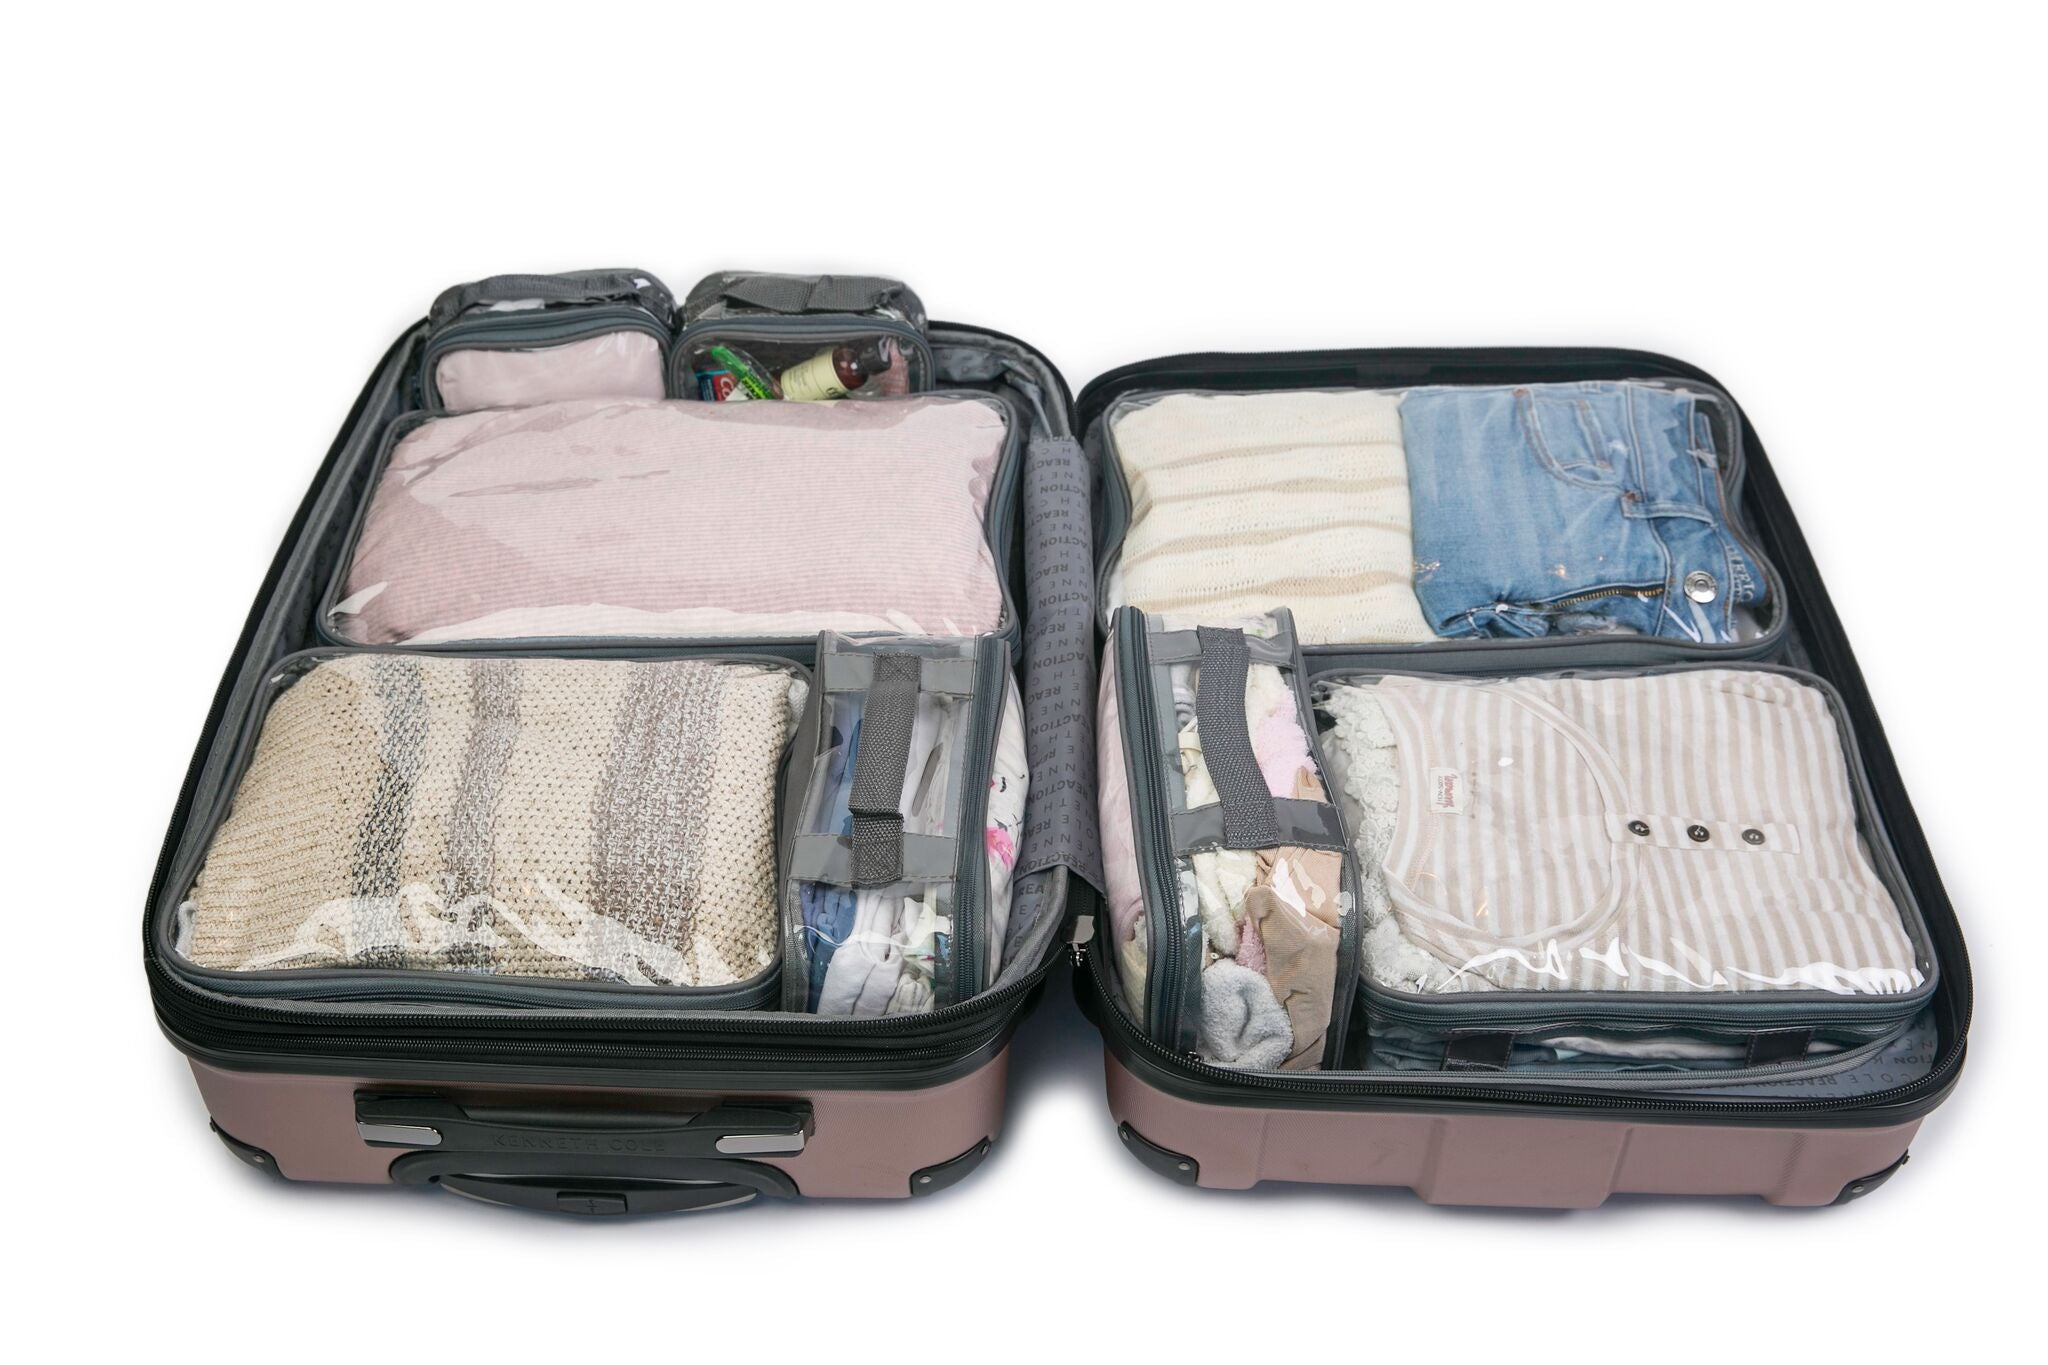 Gray packing cubes inside suitcase